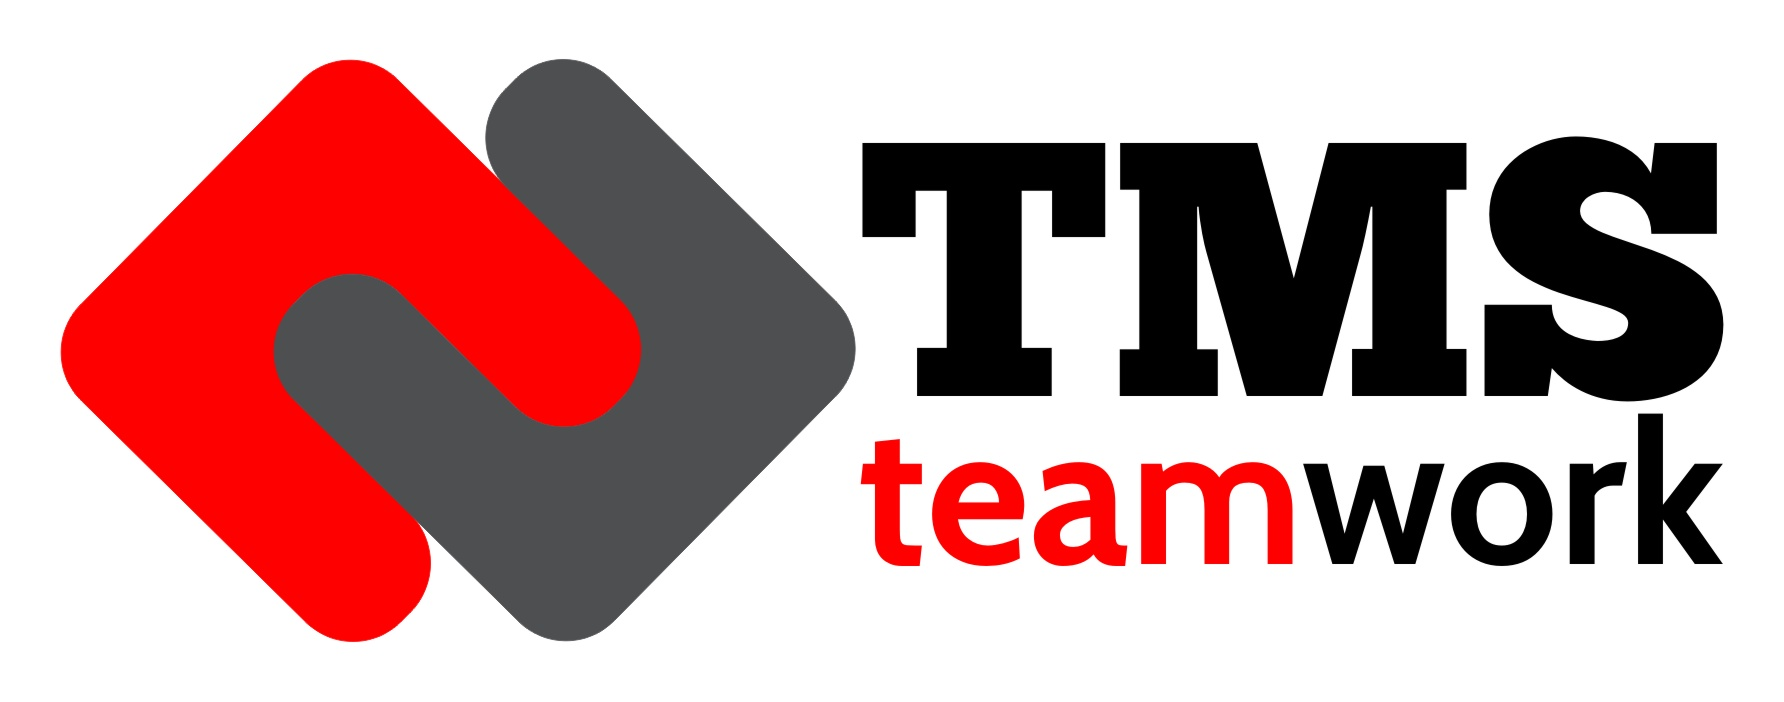 TMS Teamwork Management Services